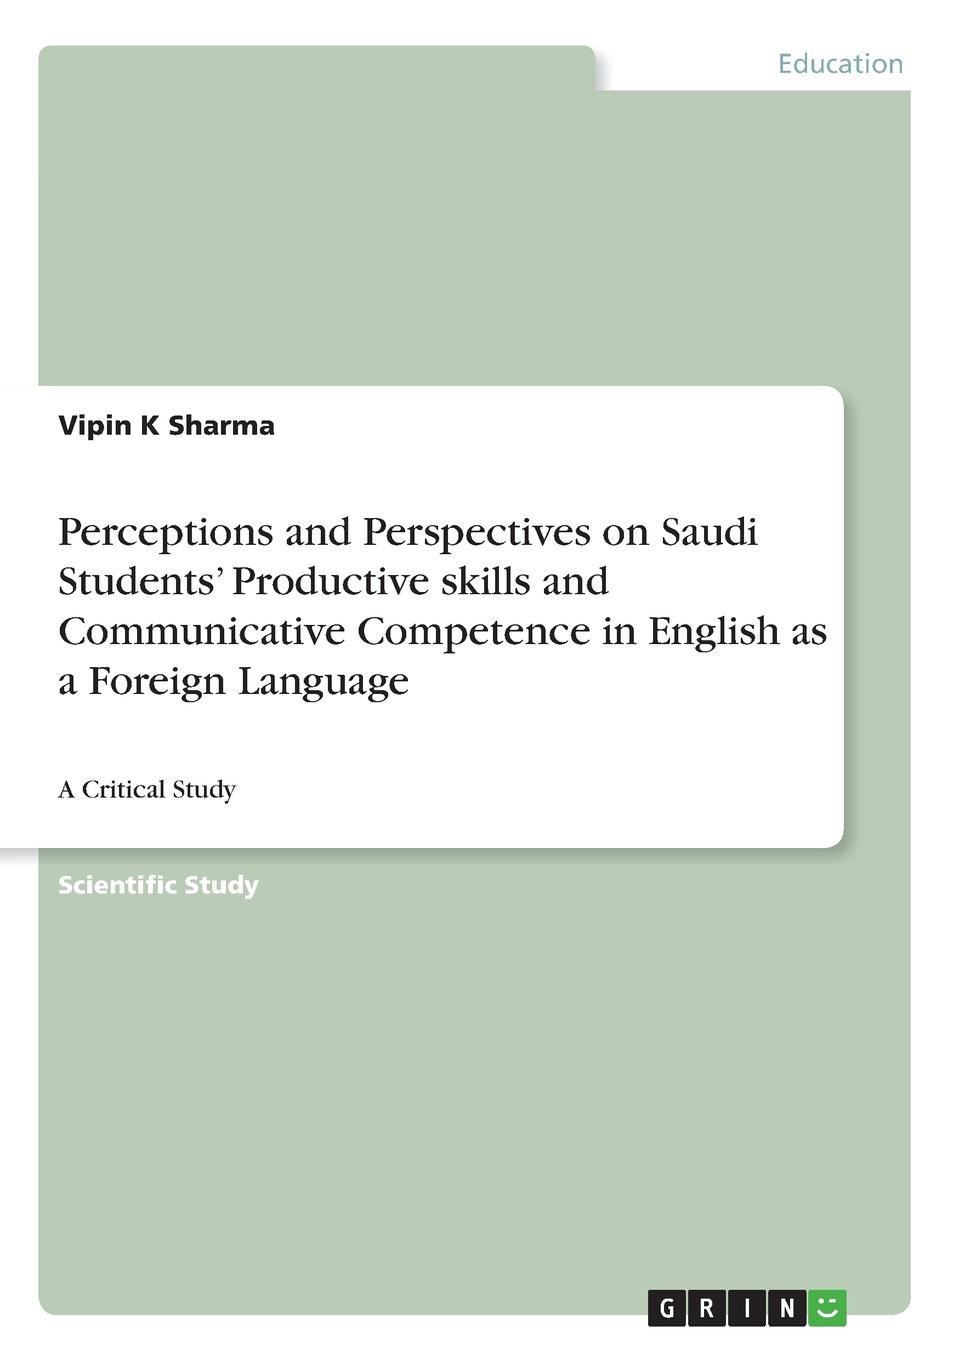 Vipin K Sharma Perceptions and Perspectives on Saudi Students. Productive skills and Communicative Competence in English as a Foreign Language motivation and action